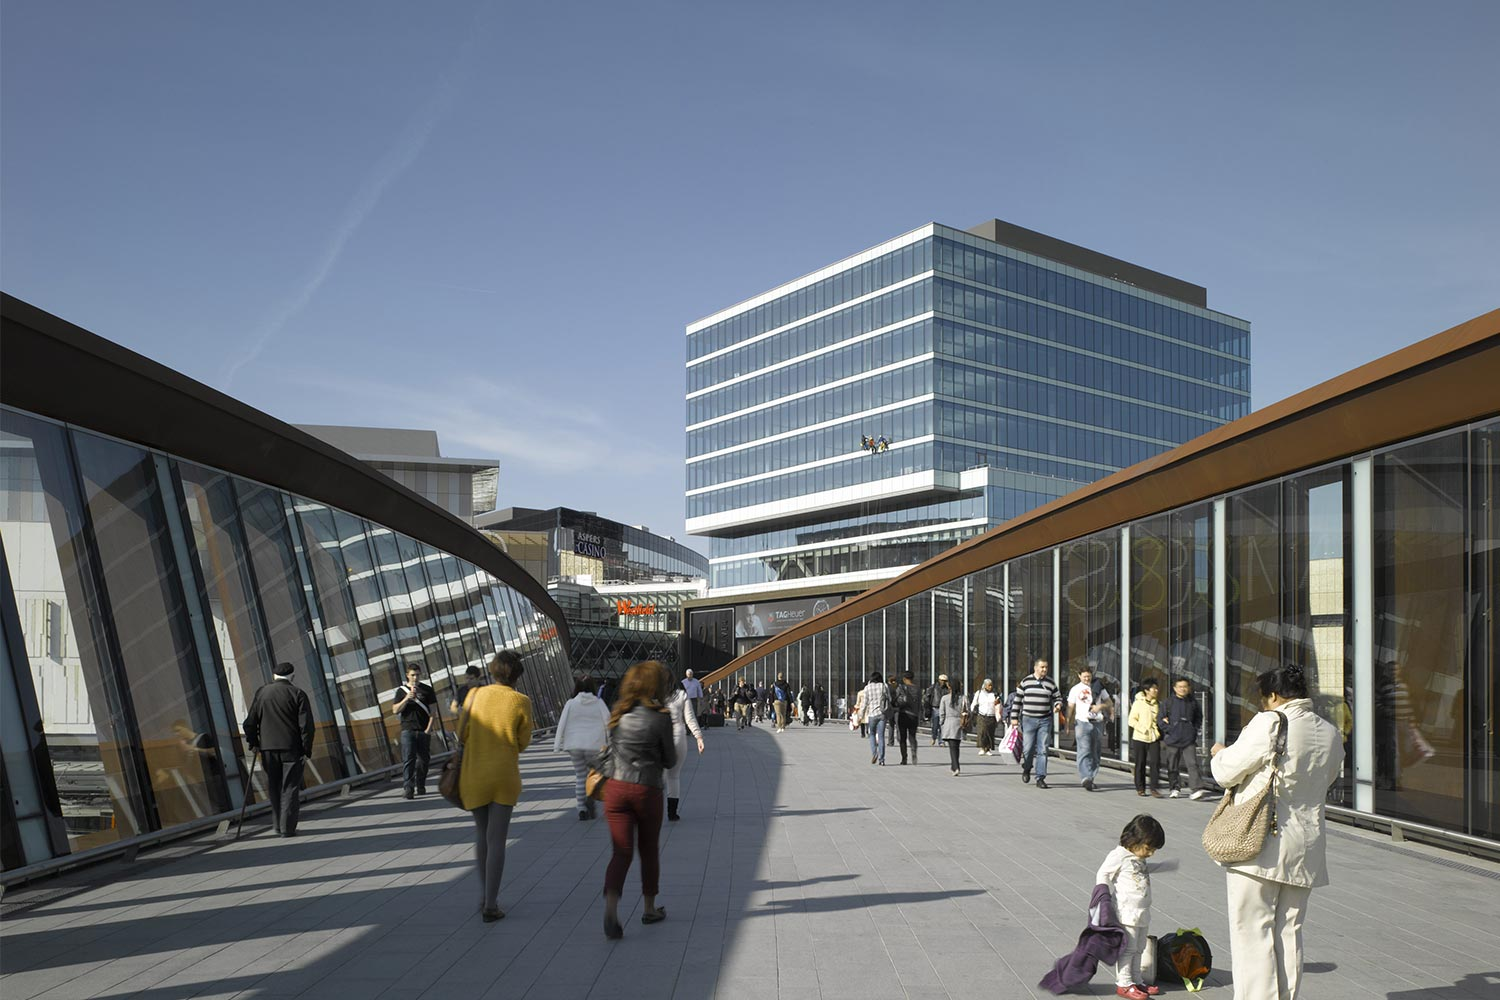 Stratford town centre link burohappold engineering for The stratford